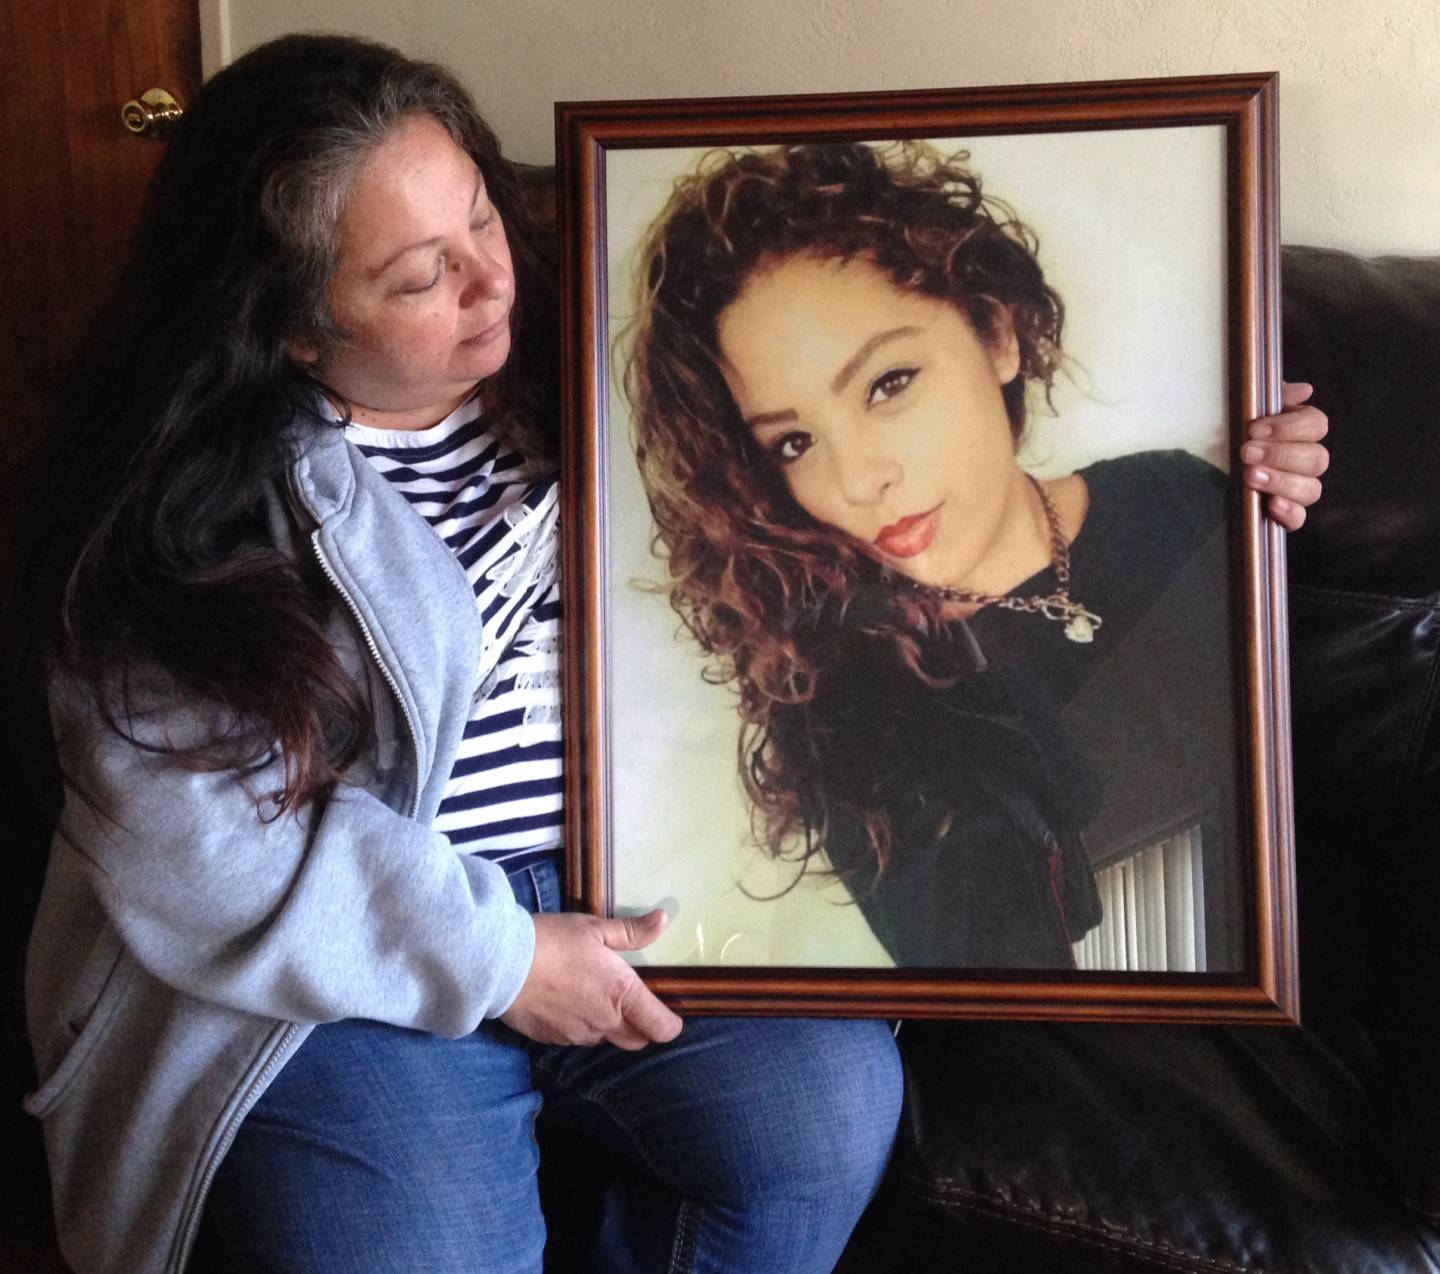 Maria Spivey, a bus driver in San Diego, looks at a photo of her daughter, Chloe Roston. April Dembosky/KQED